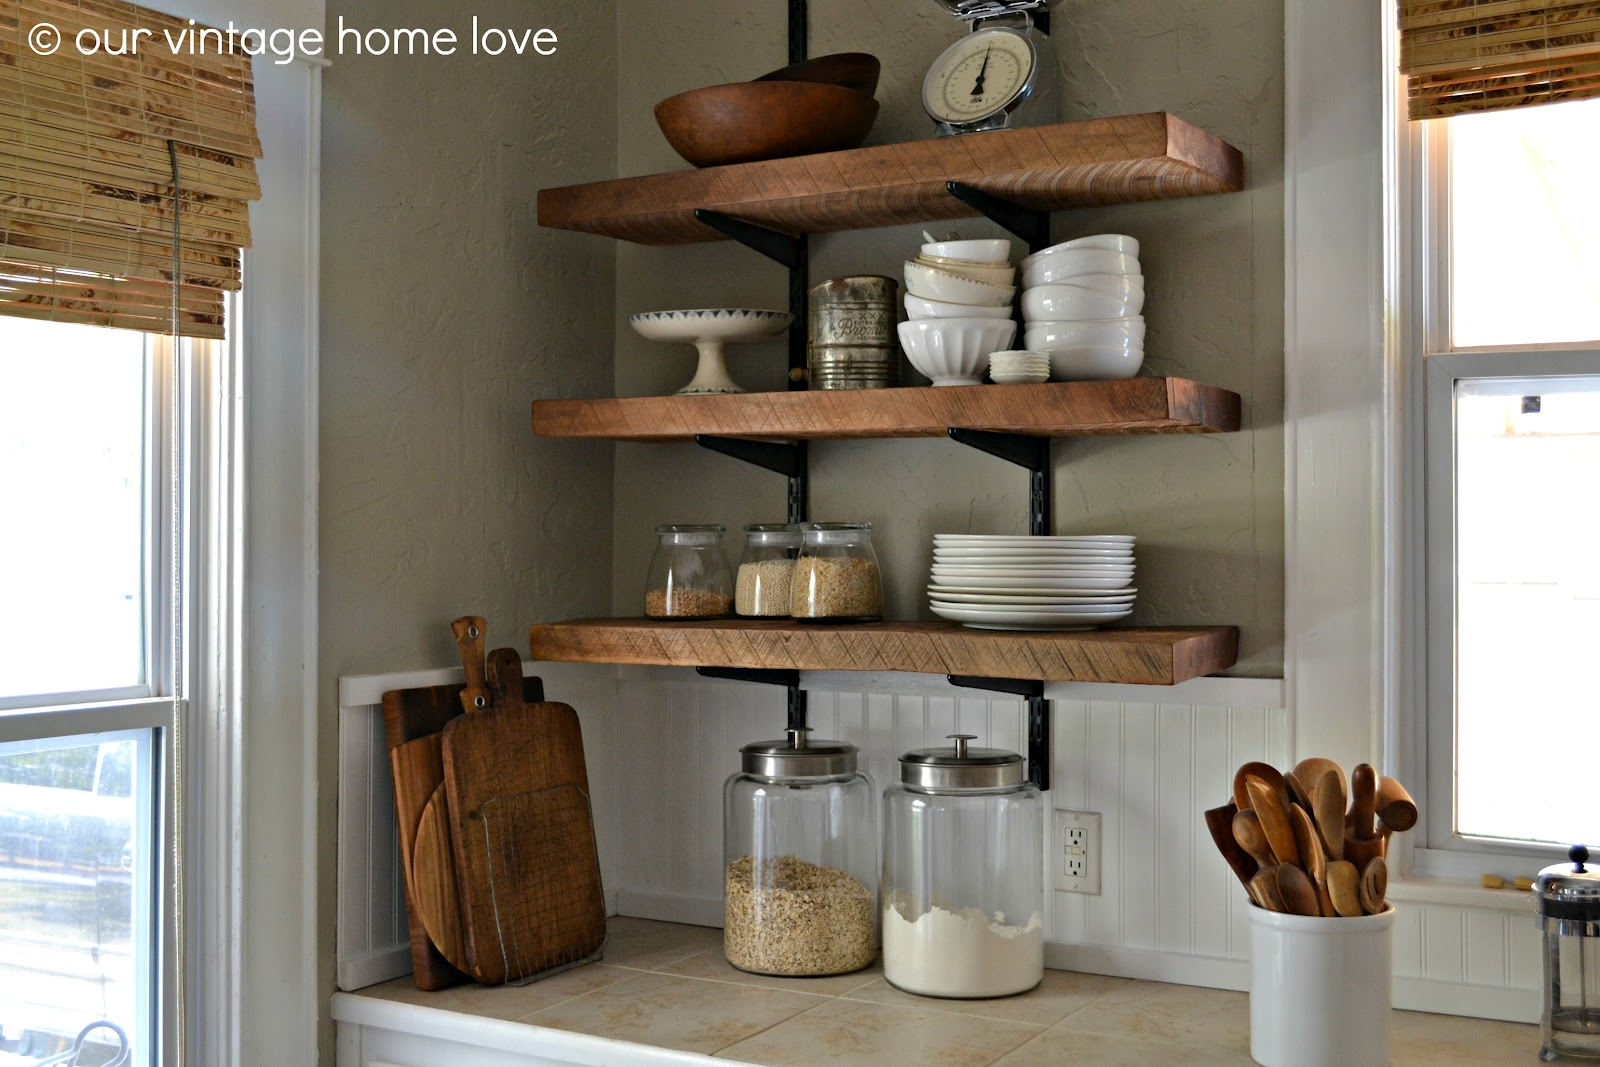 Reclaimed Wood Kitchen Shelving - Reveal